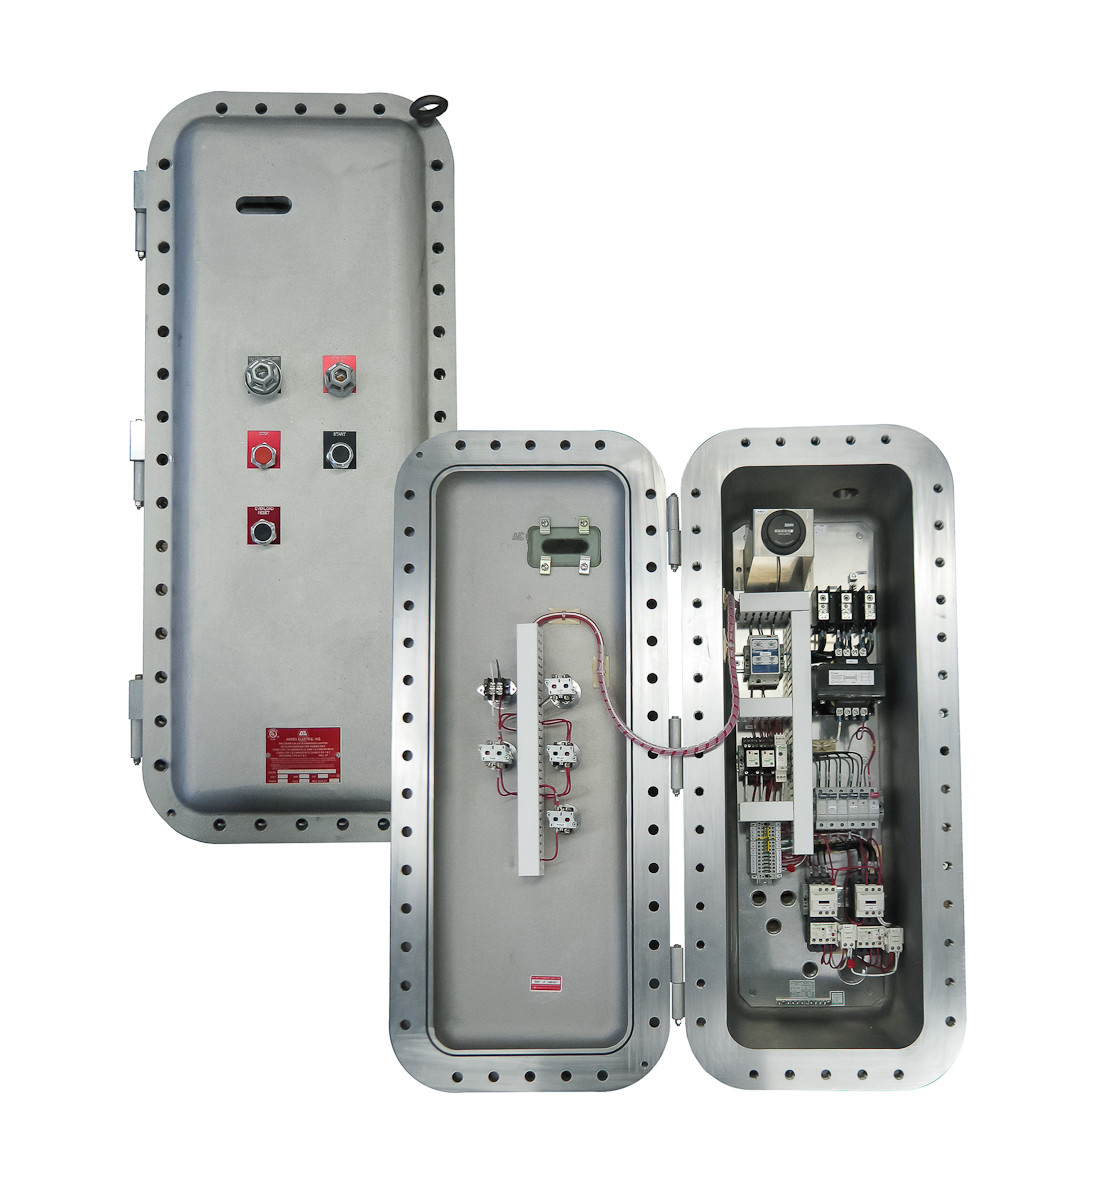 nema-7-panel-01-front-view-door-open-and-closed1